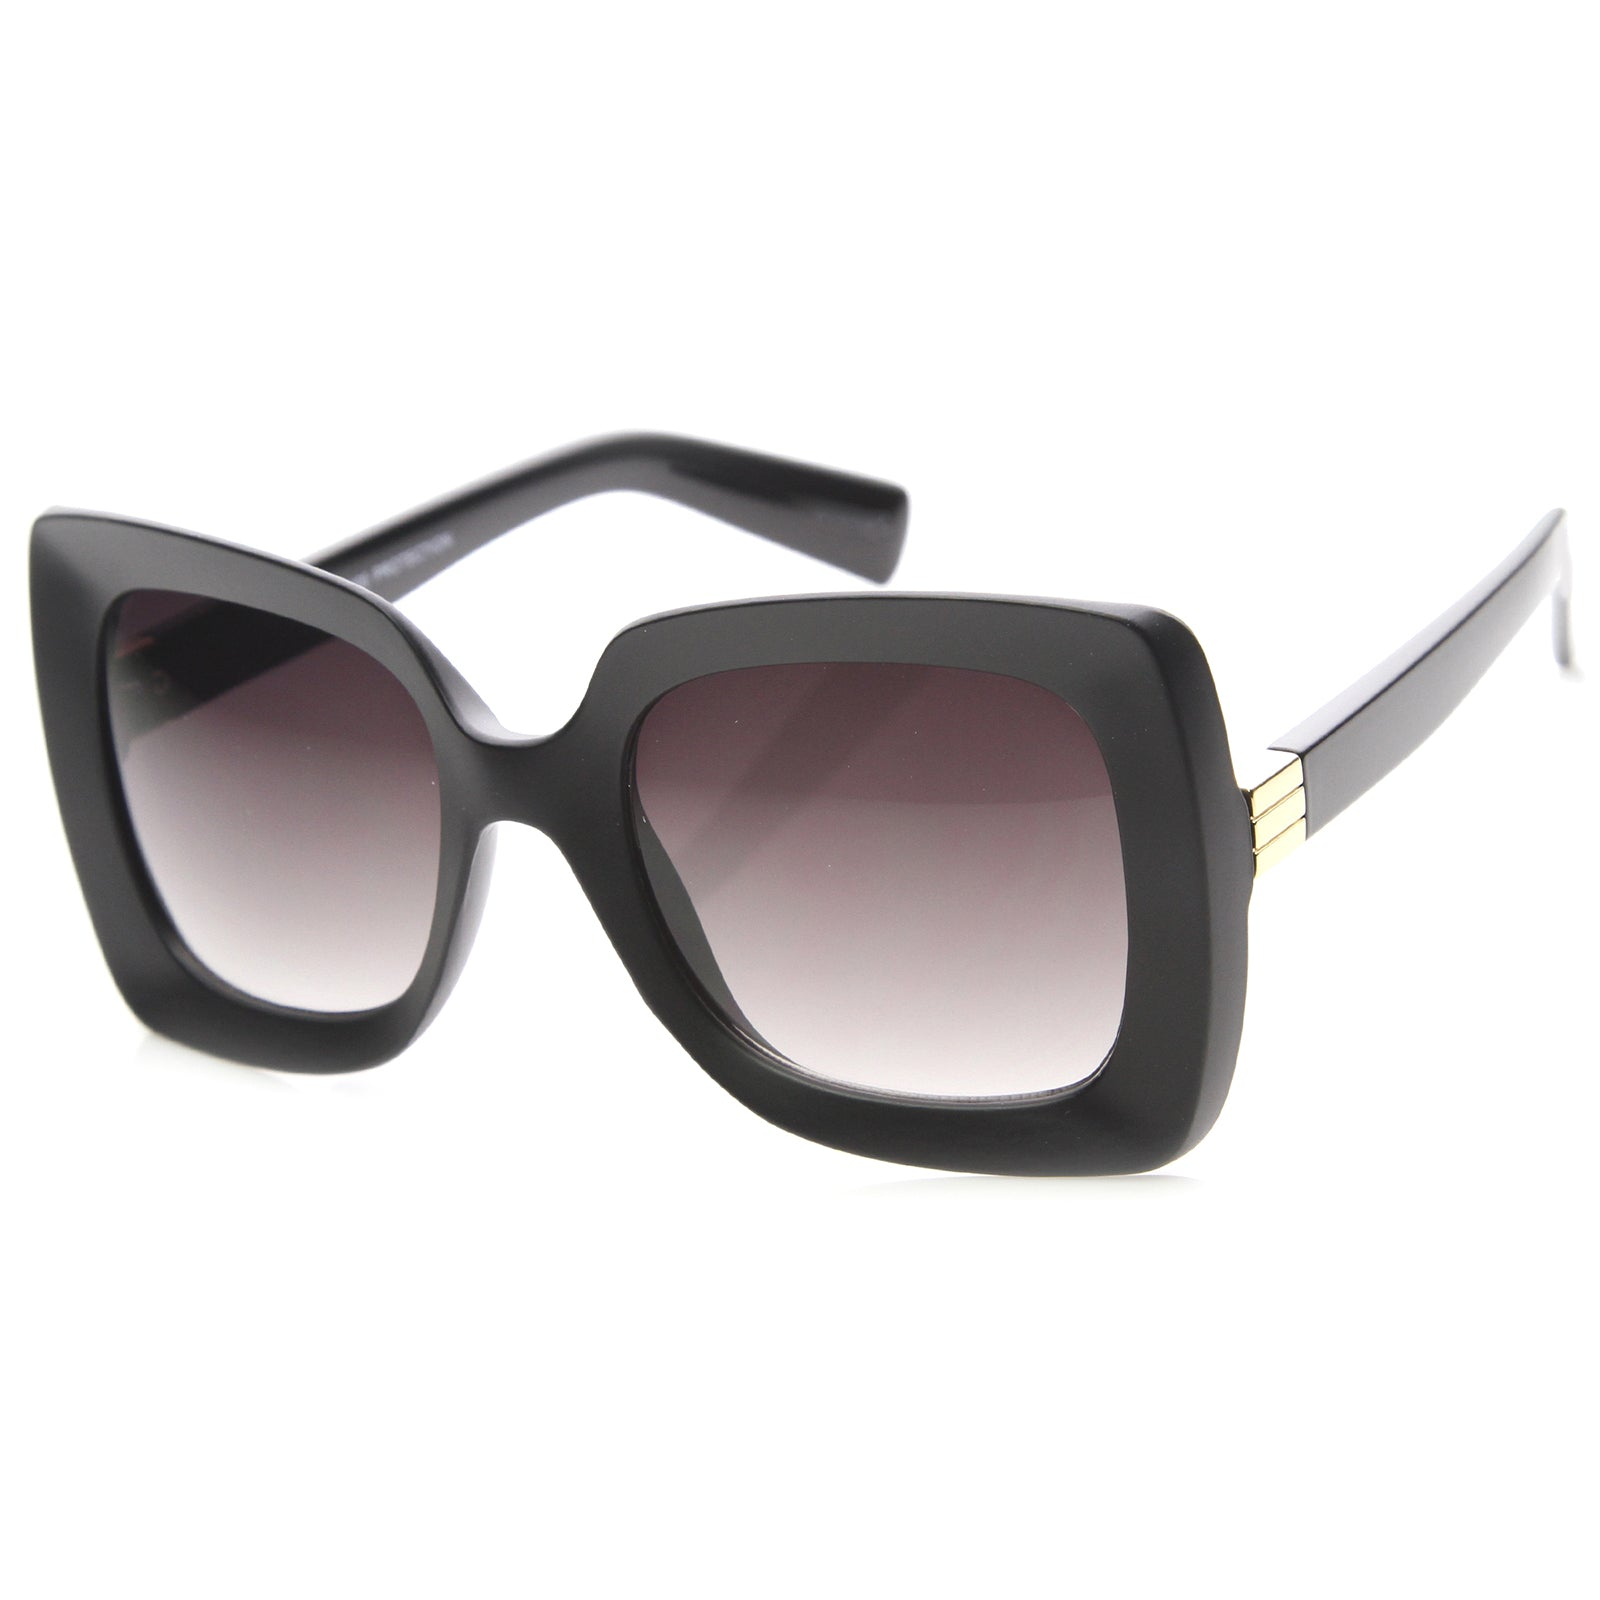 Womens Butterfly Sunglasses With UV400 Protected Gradient Lens - sunglass.la - 7